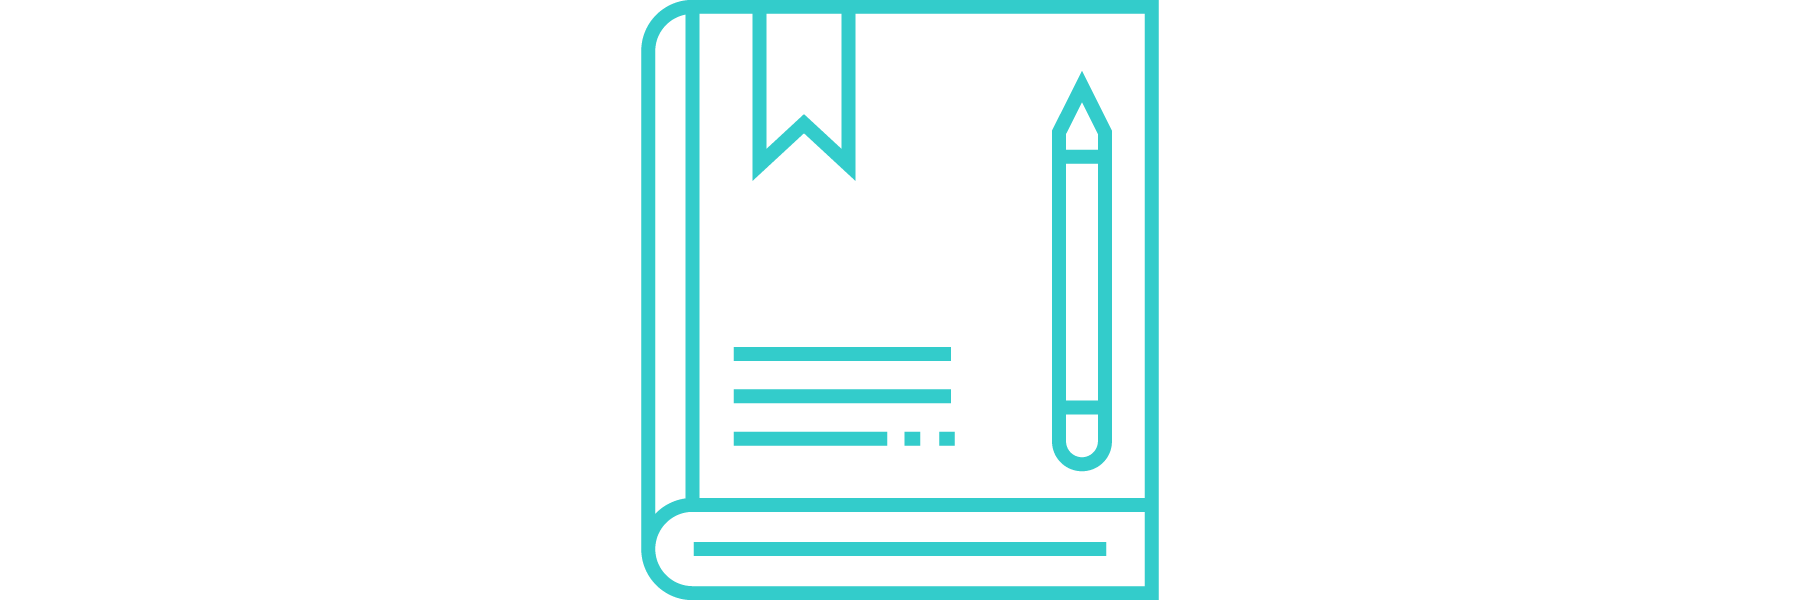 donations-stationery@2x.png